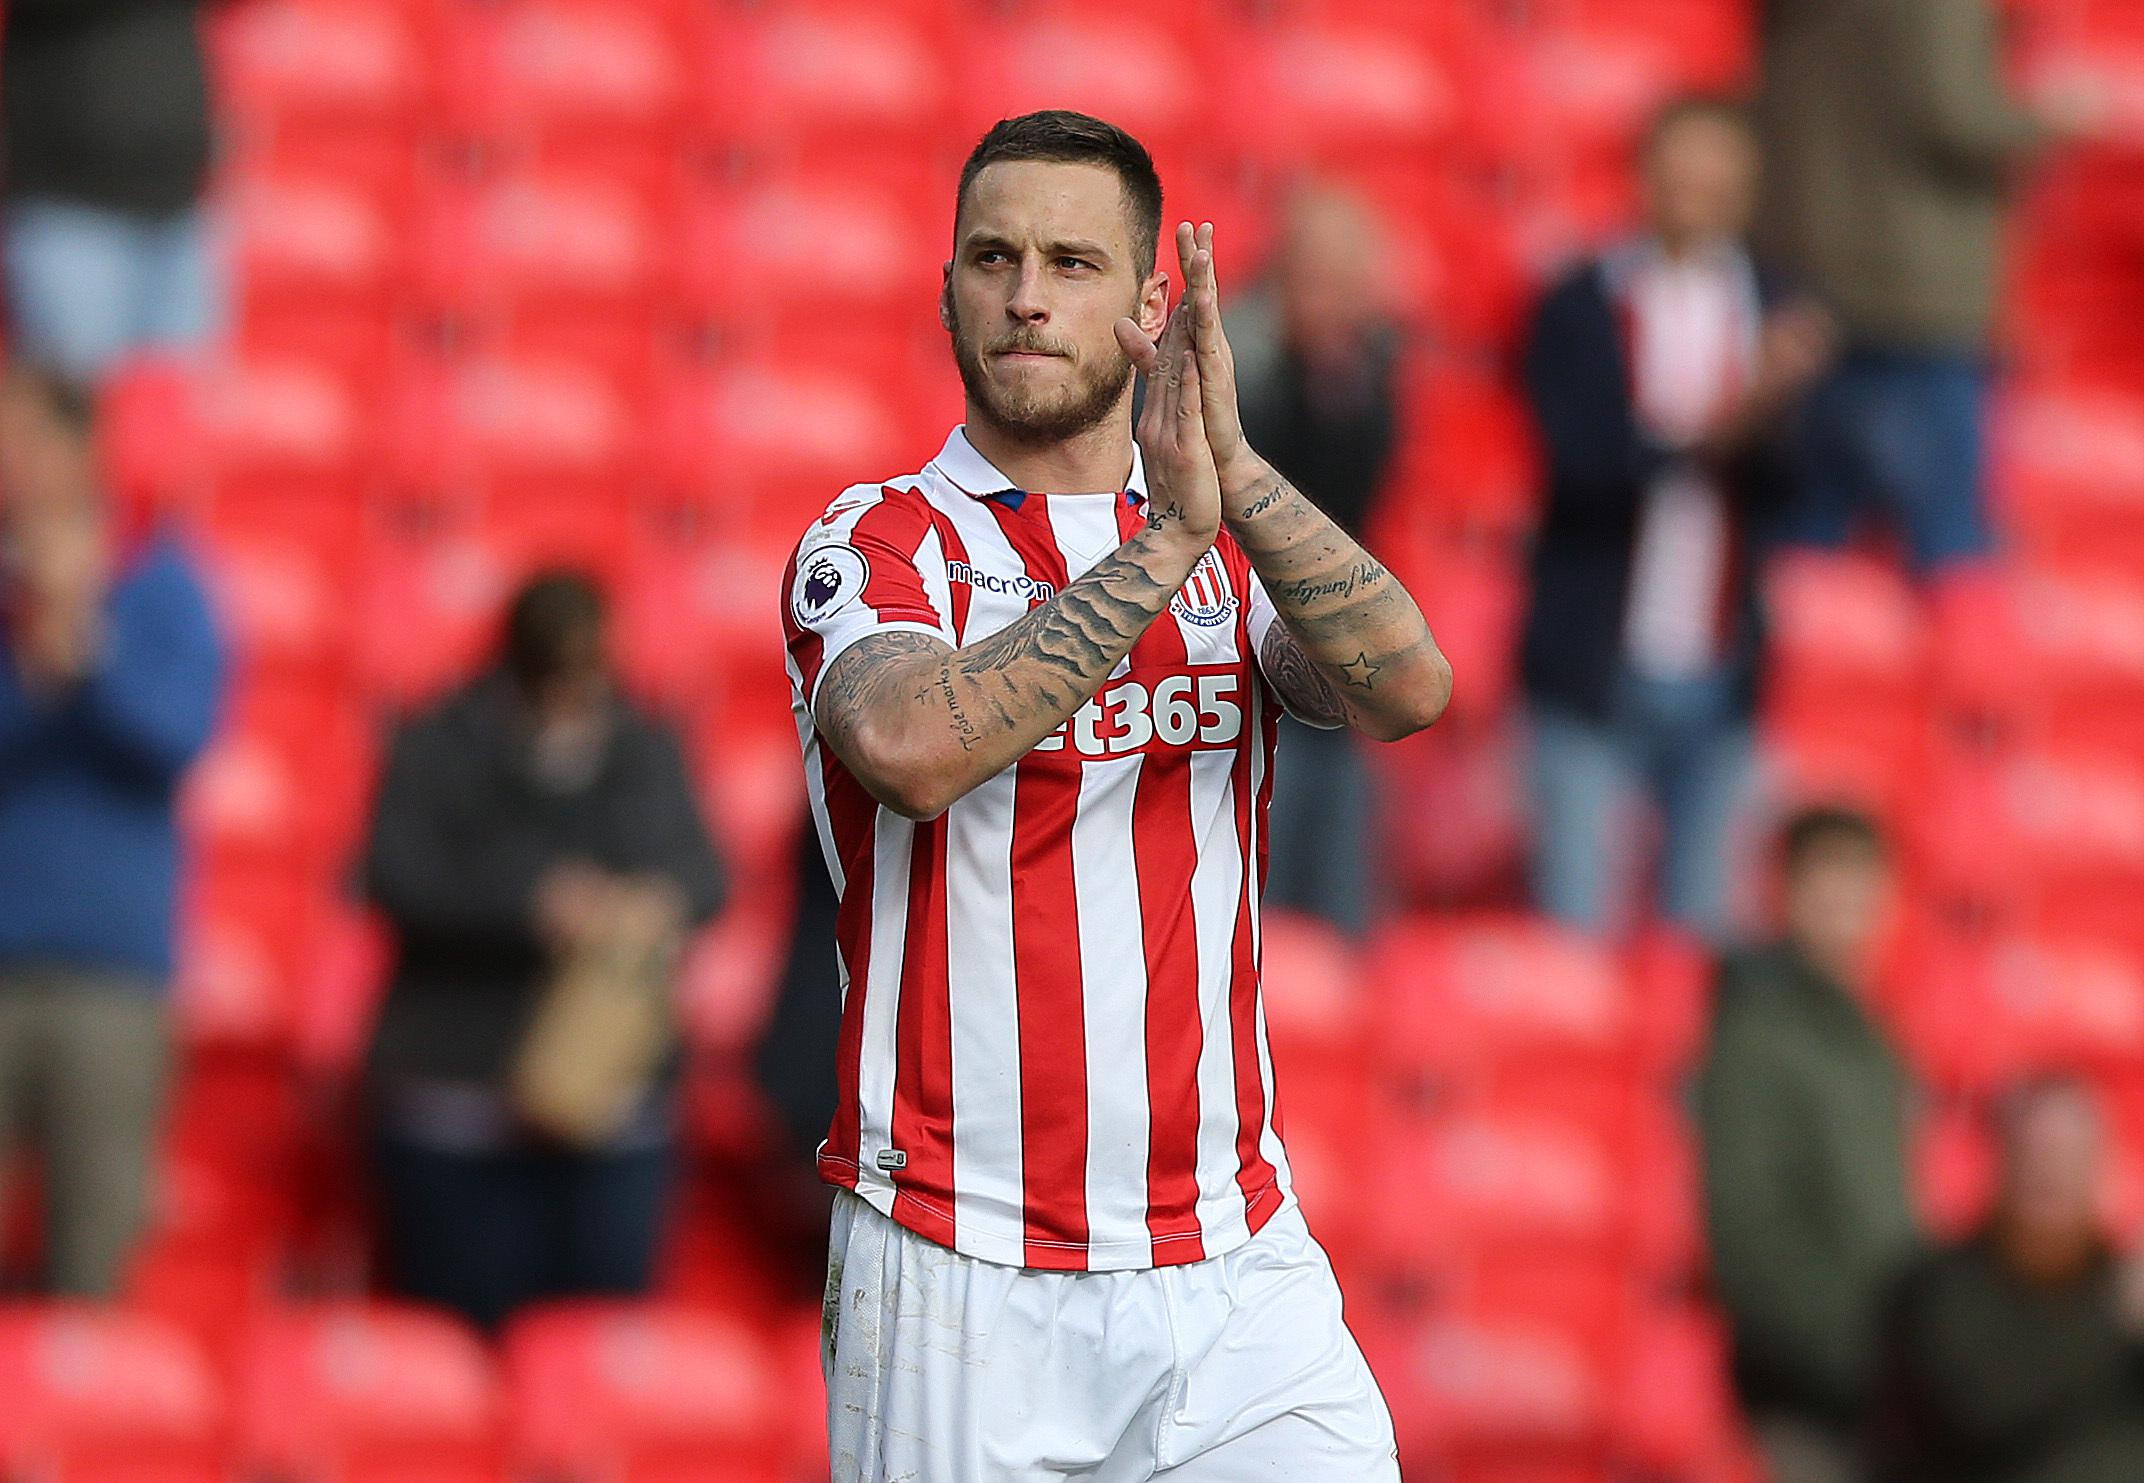 Arnautovic is a threat when Stoke play at home